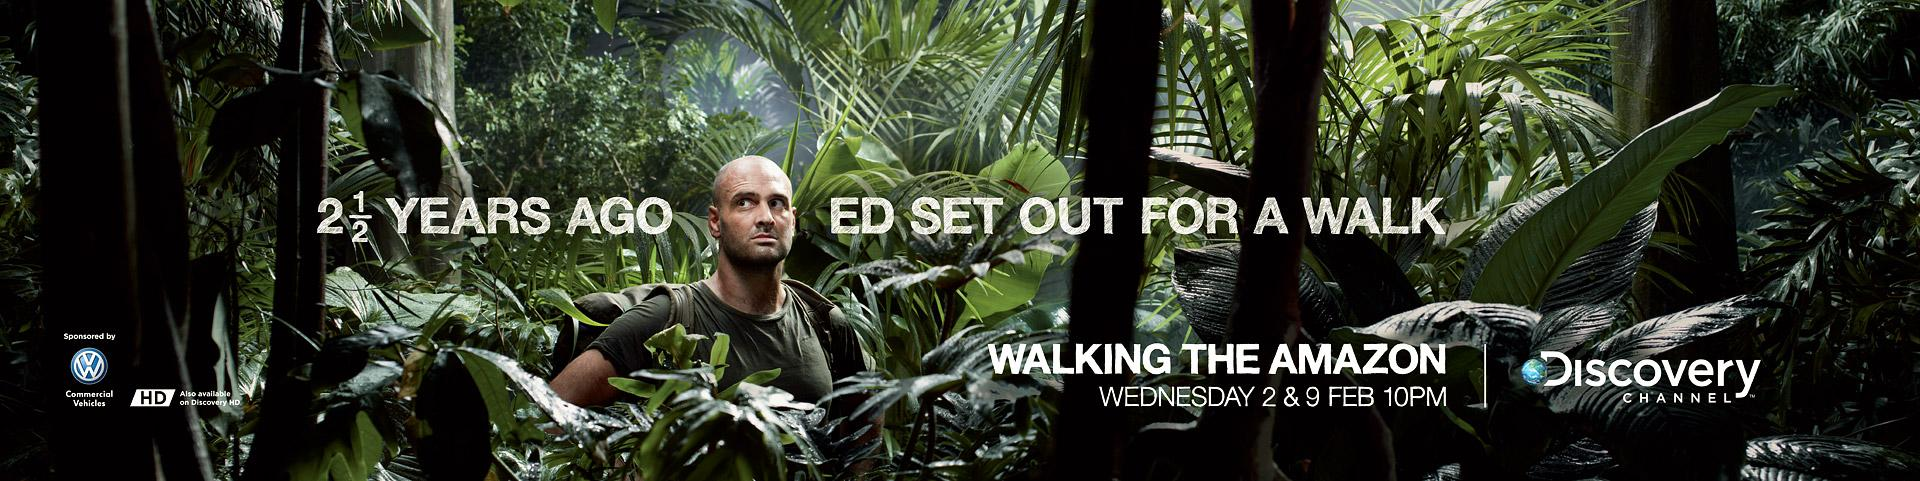 Discovery Channel Outdoor Ad -  Walking The Amazon